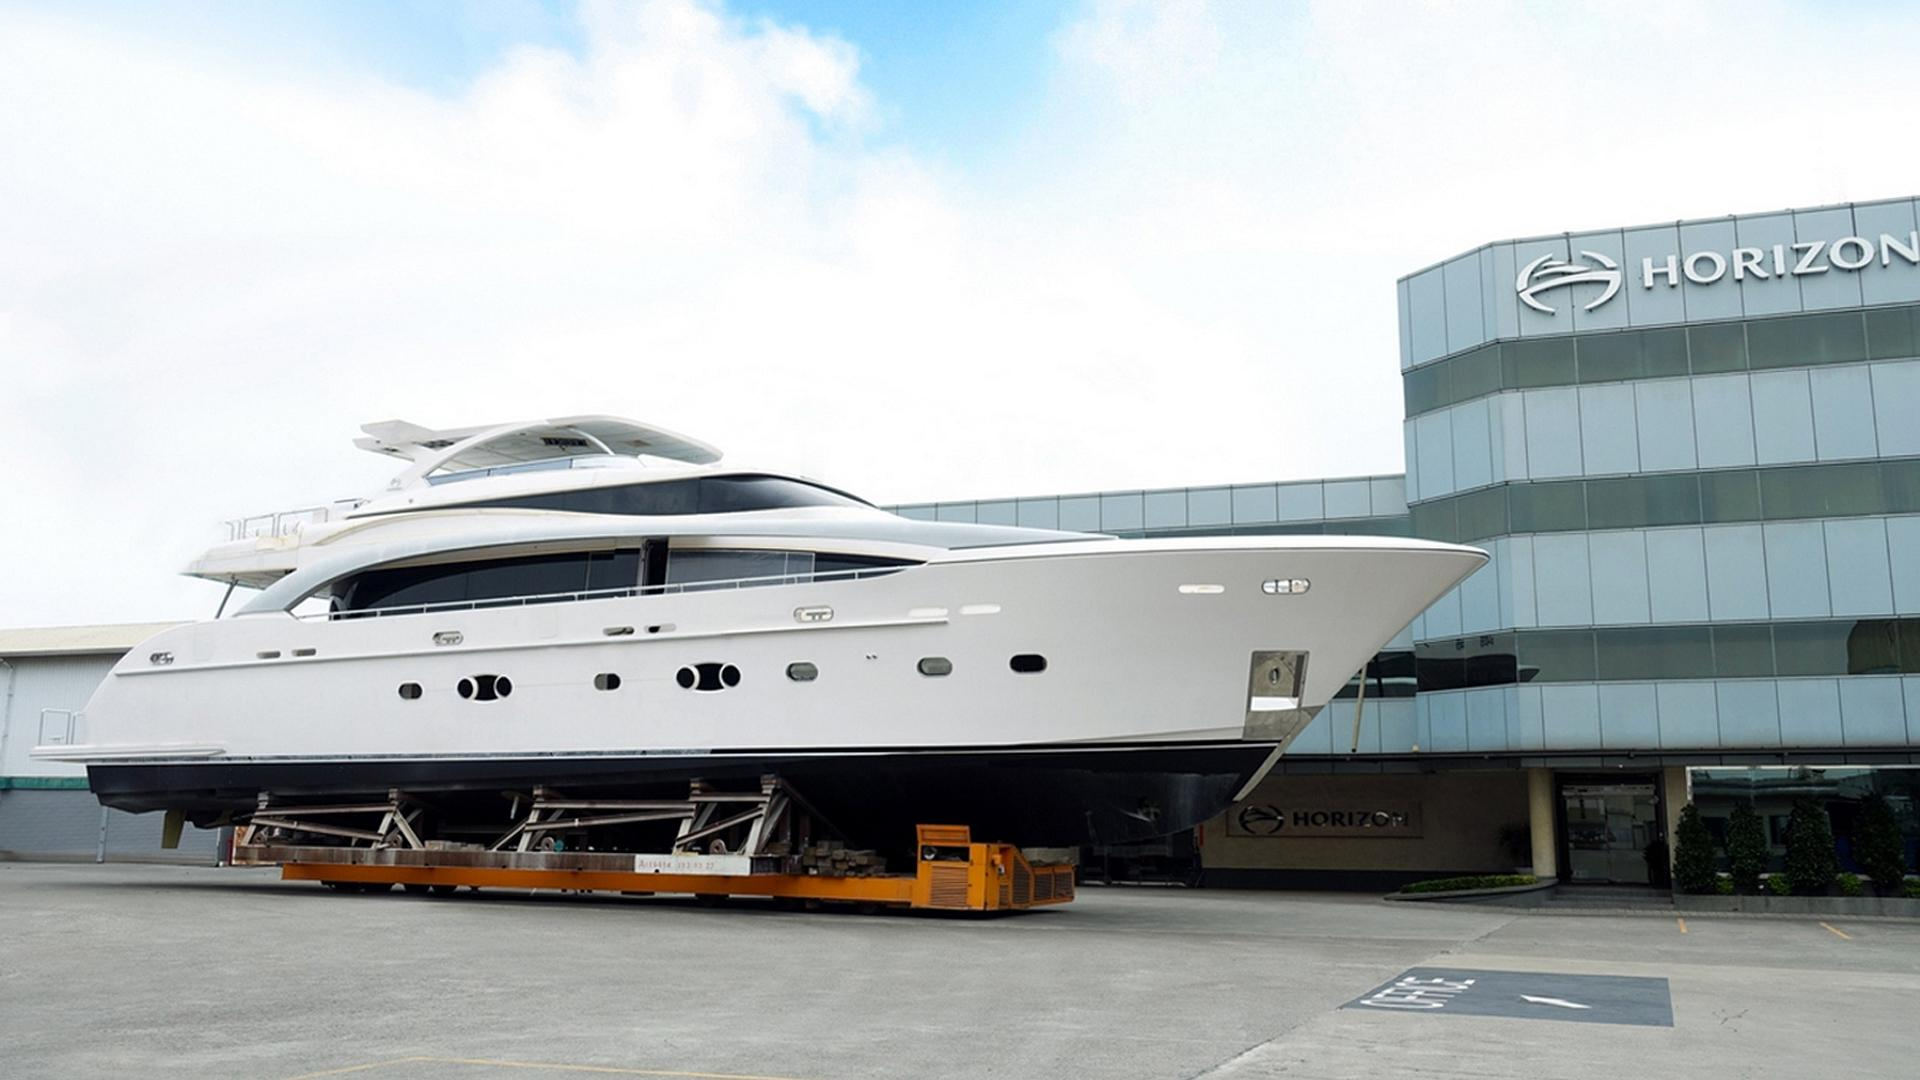 rp110 hull 4 motoryacht horizon 34m 2017 launch